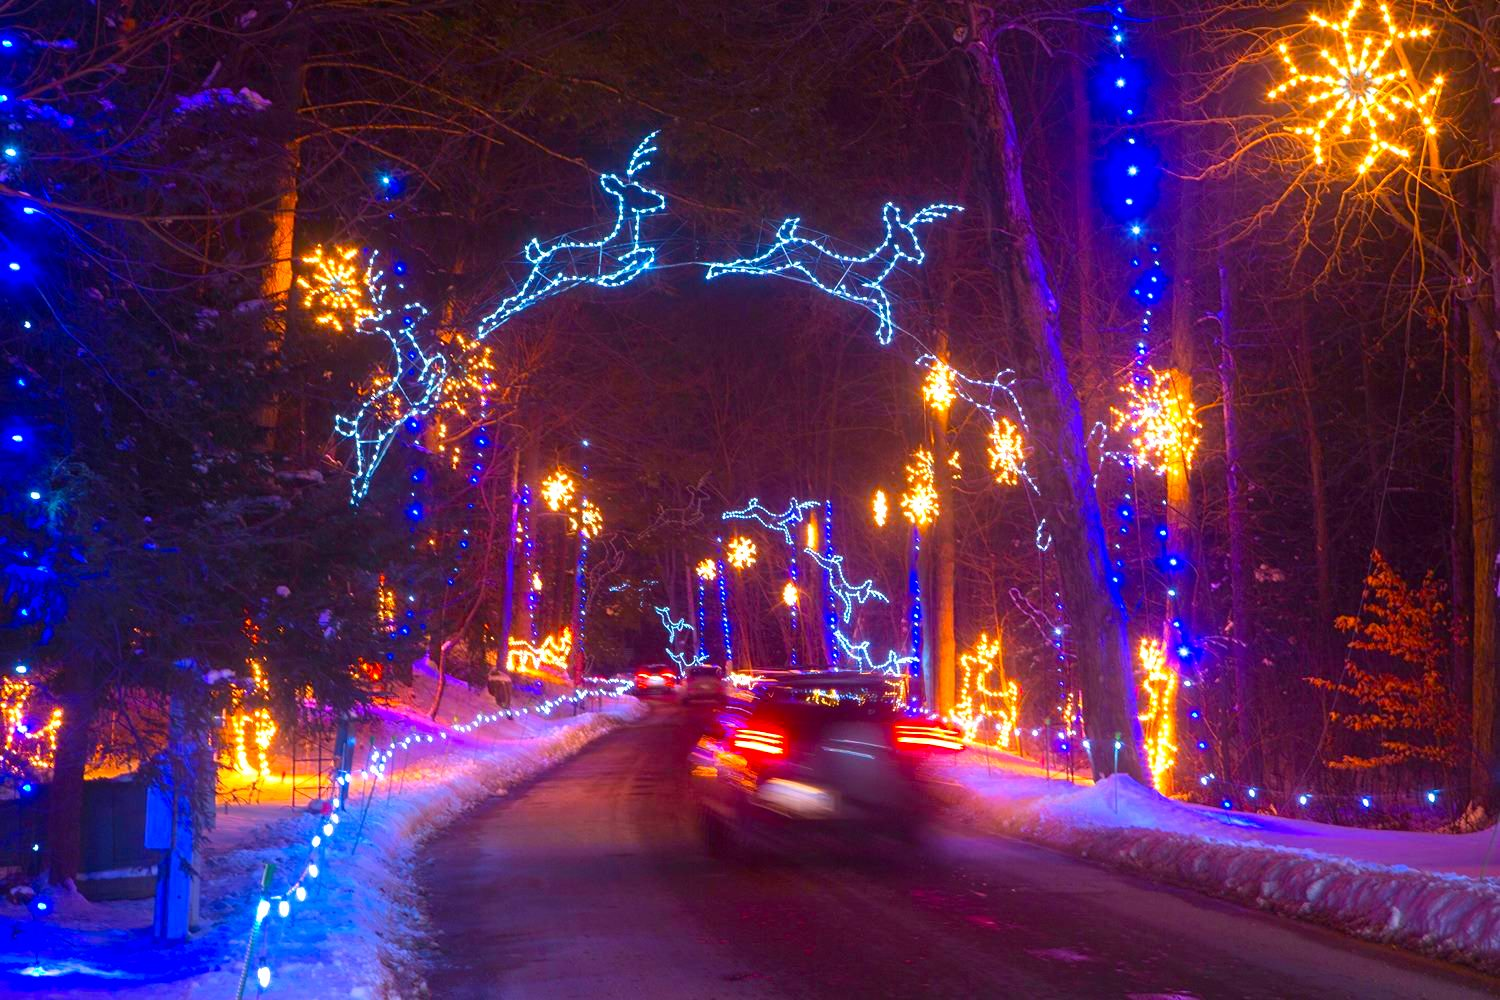 The Mesmerizing Christmas Display In Massachusetts With